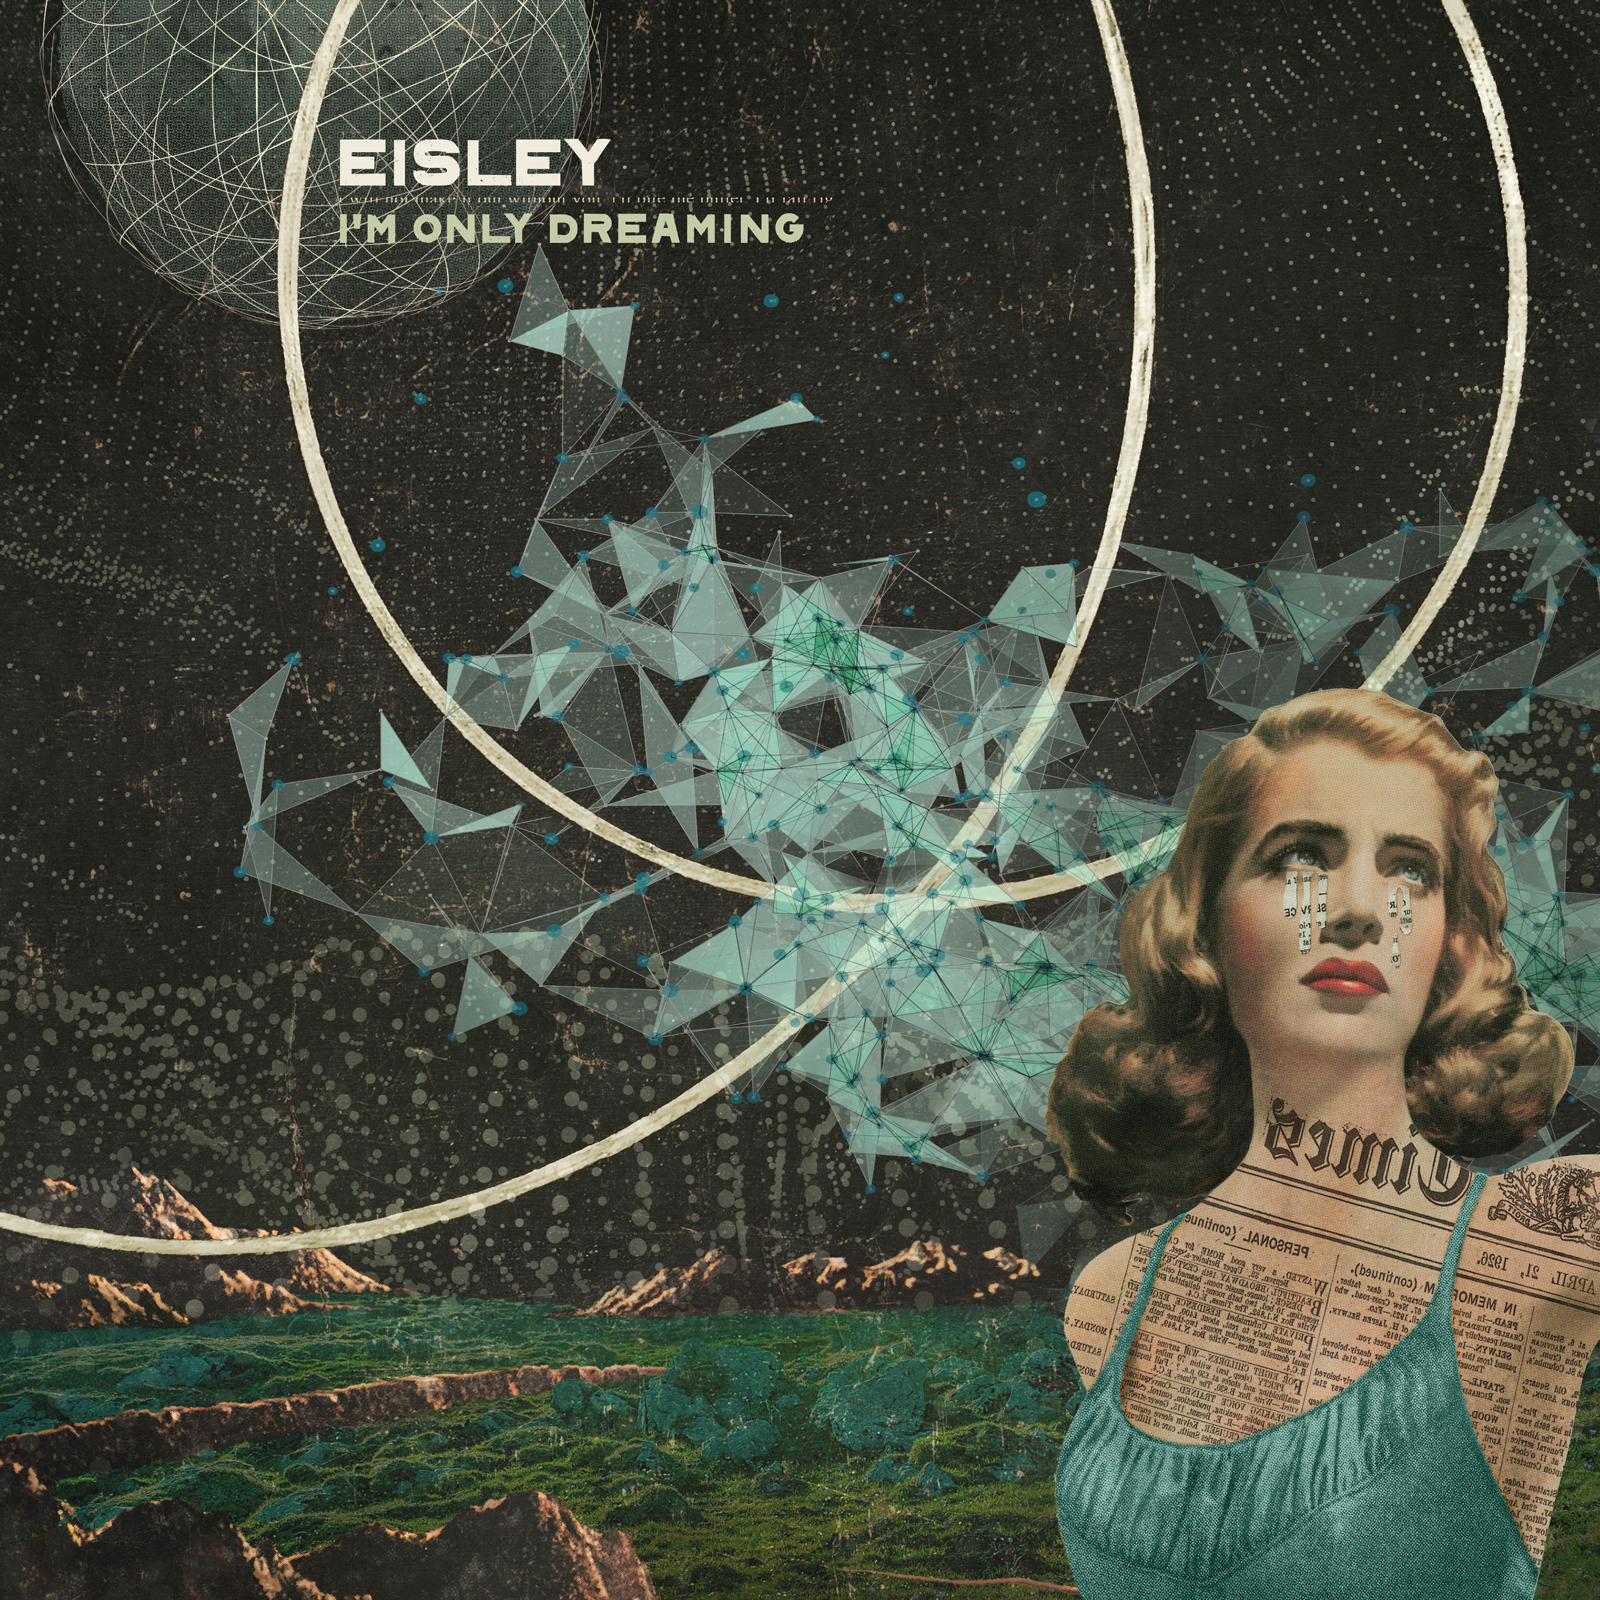 eisley-only-dreaming-colored-vinyl-gerosa-records